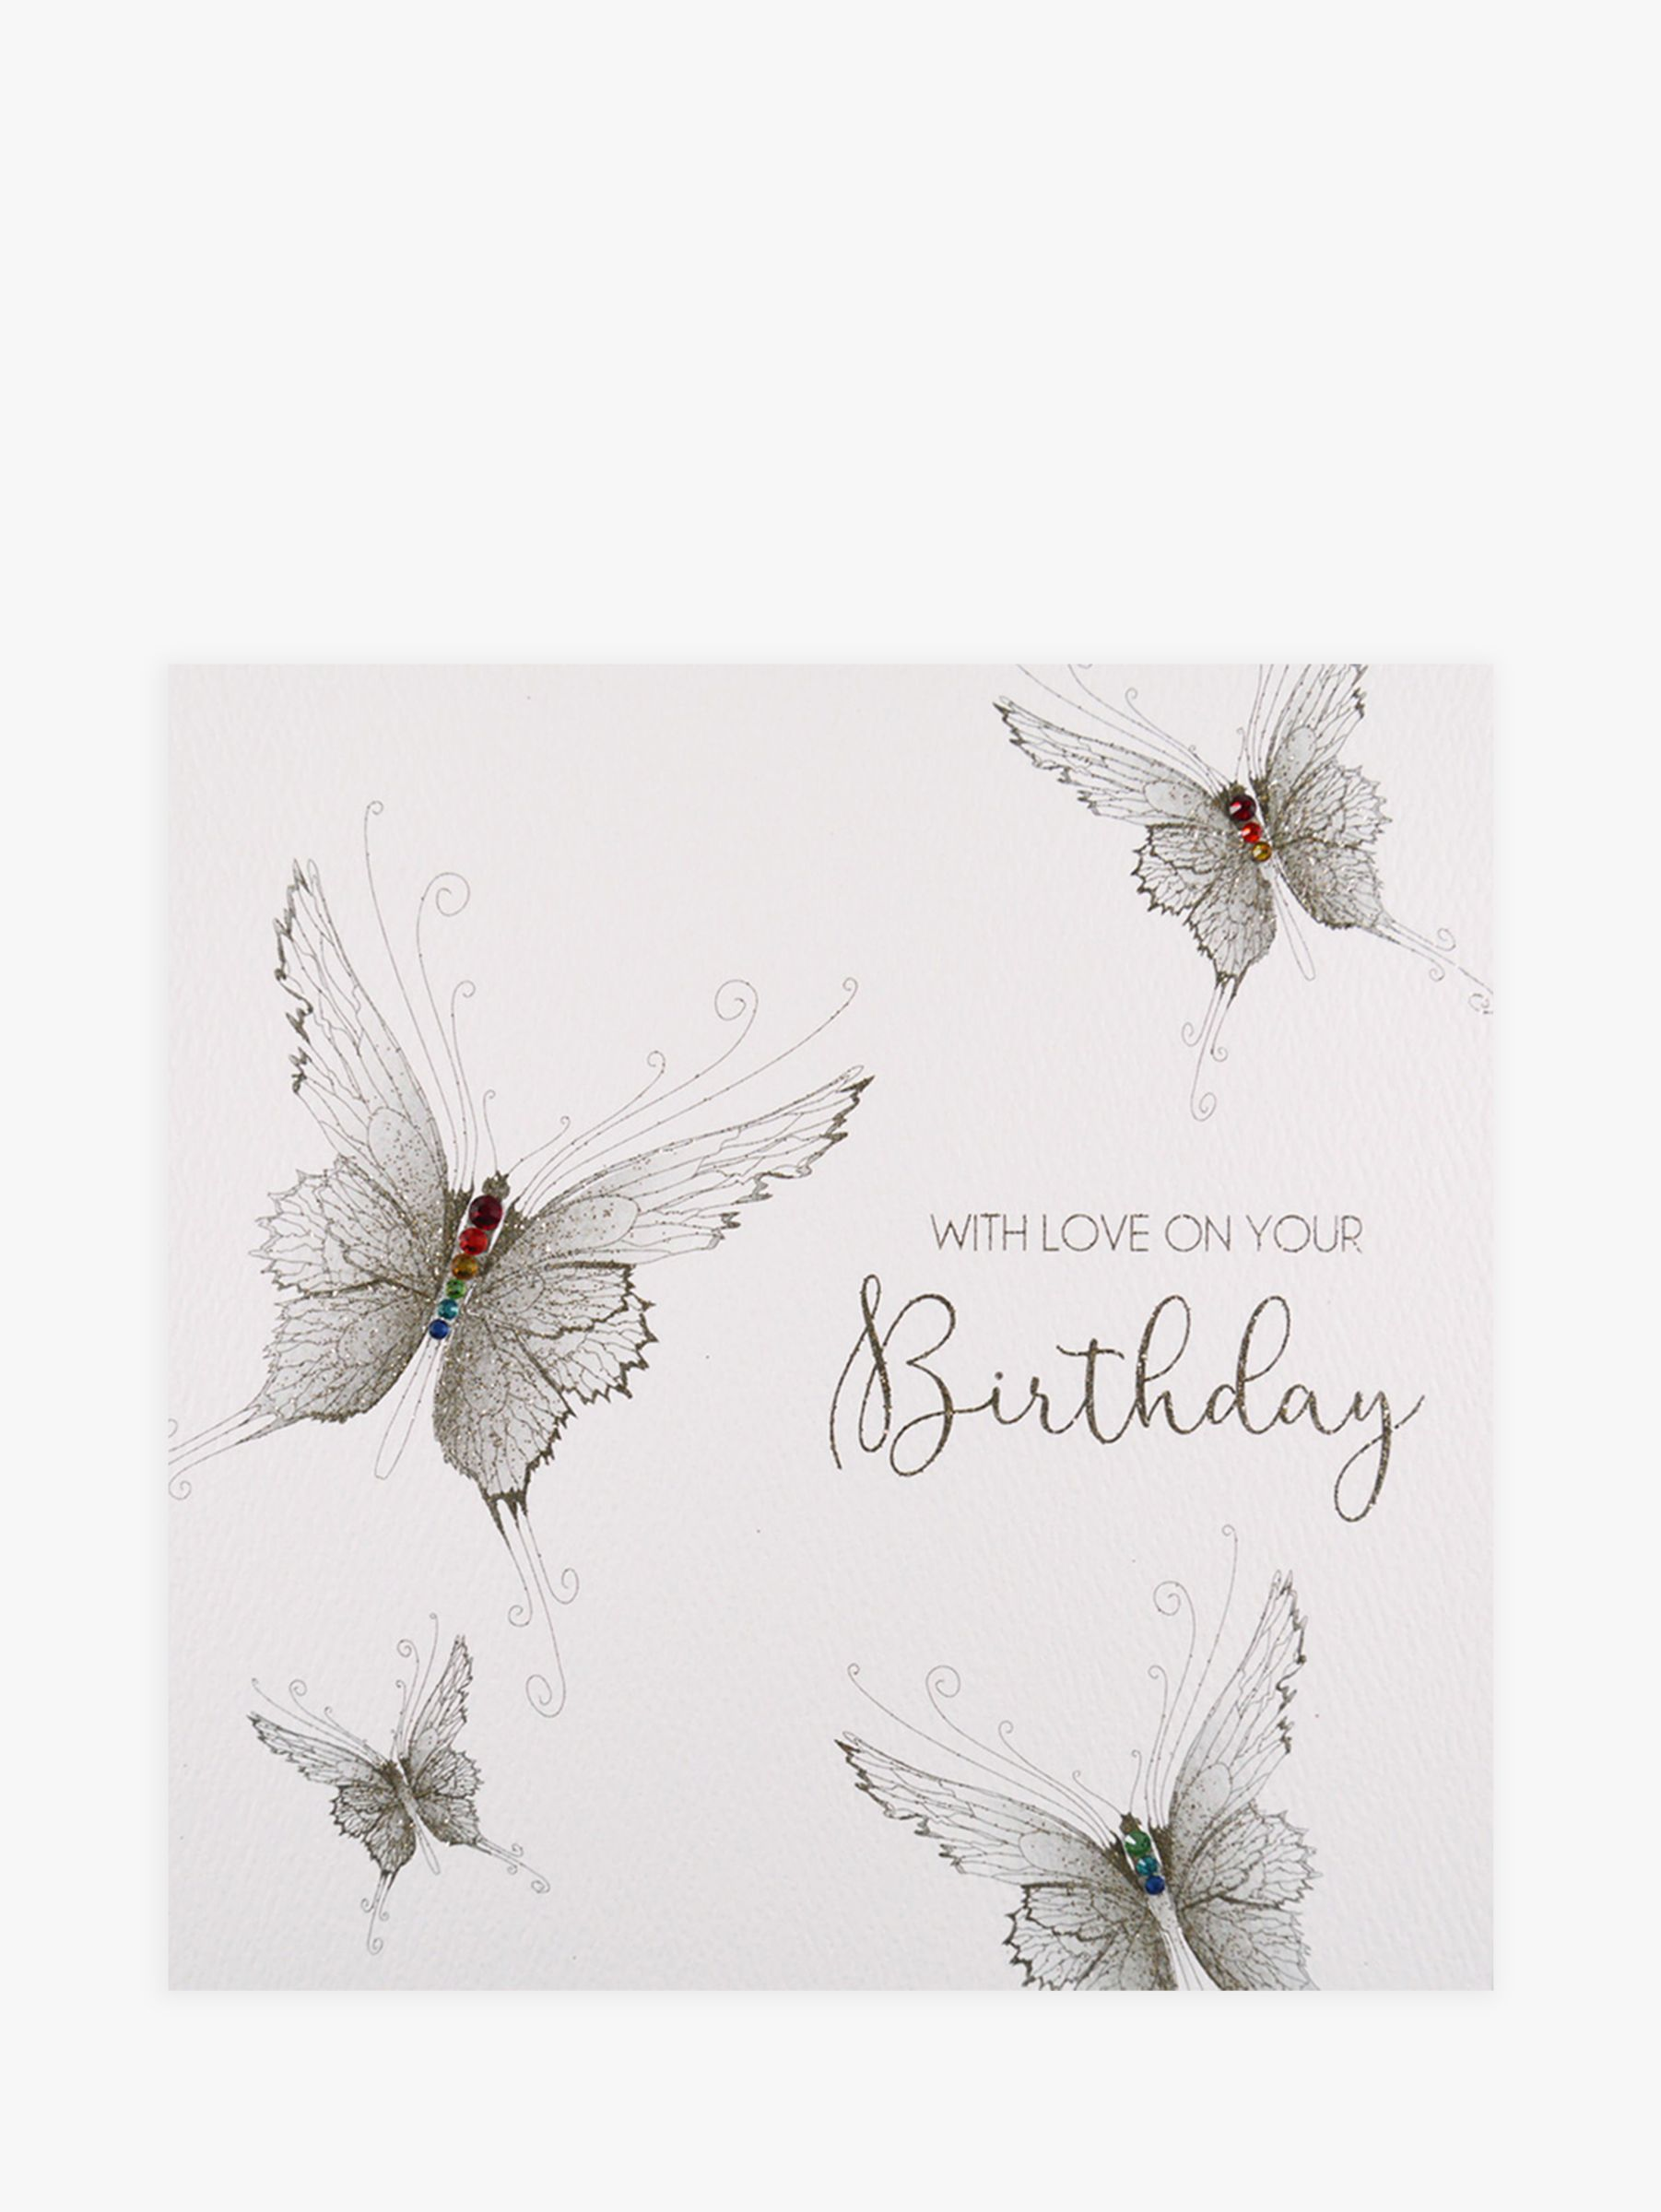 Five Dollar Shake Five Dollar Shake Butterflies With Love On Your Birthday Card